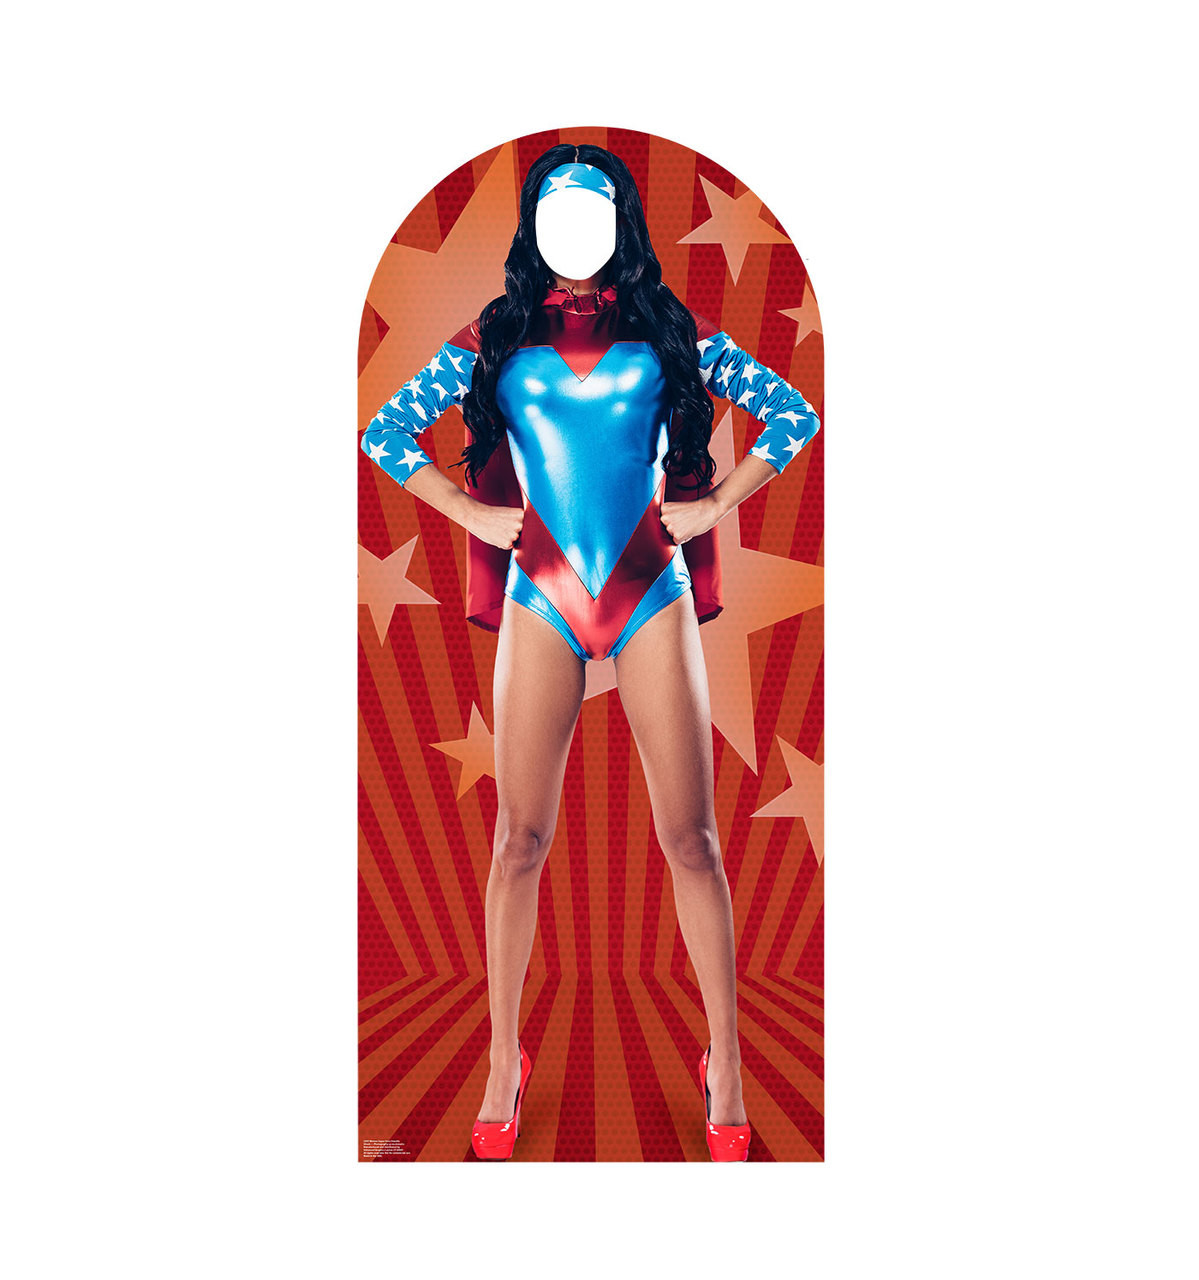 Woman Superhero Cardboard Stand-In